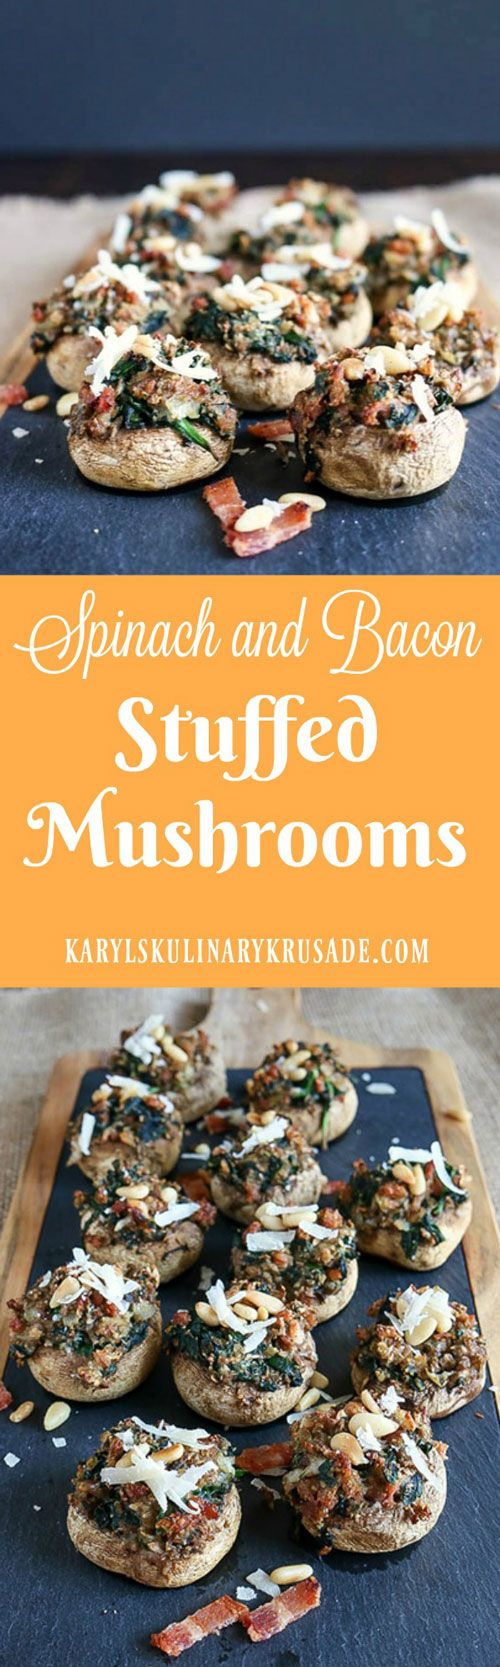 Spinach and Bacon Stuffed Mushrooms have that hearty bite and delicious goodness that will make you the hit of your next party. Baby spinach, thick-cut bacon, fresh Parmesan and toasted pine nuts create a wonderful combination #mushrooms #bacon #spinach #cheese #appetizer #fingerfood #partyfood #karylskulinarykrusade